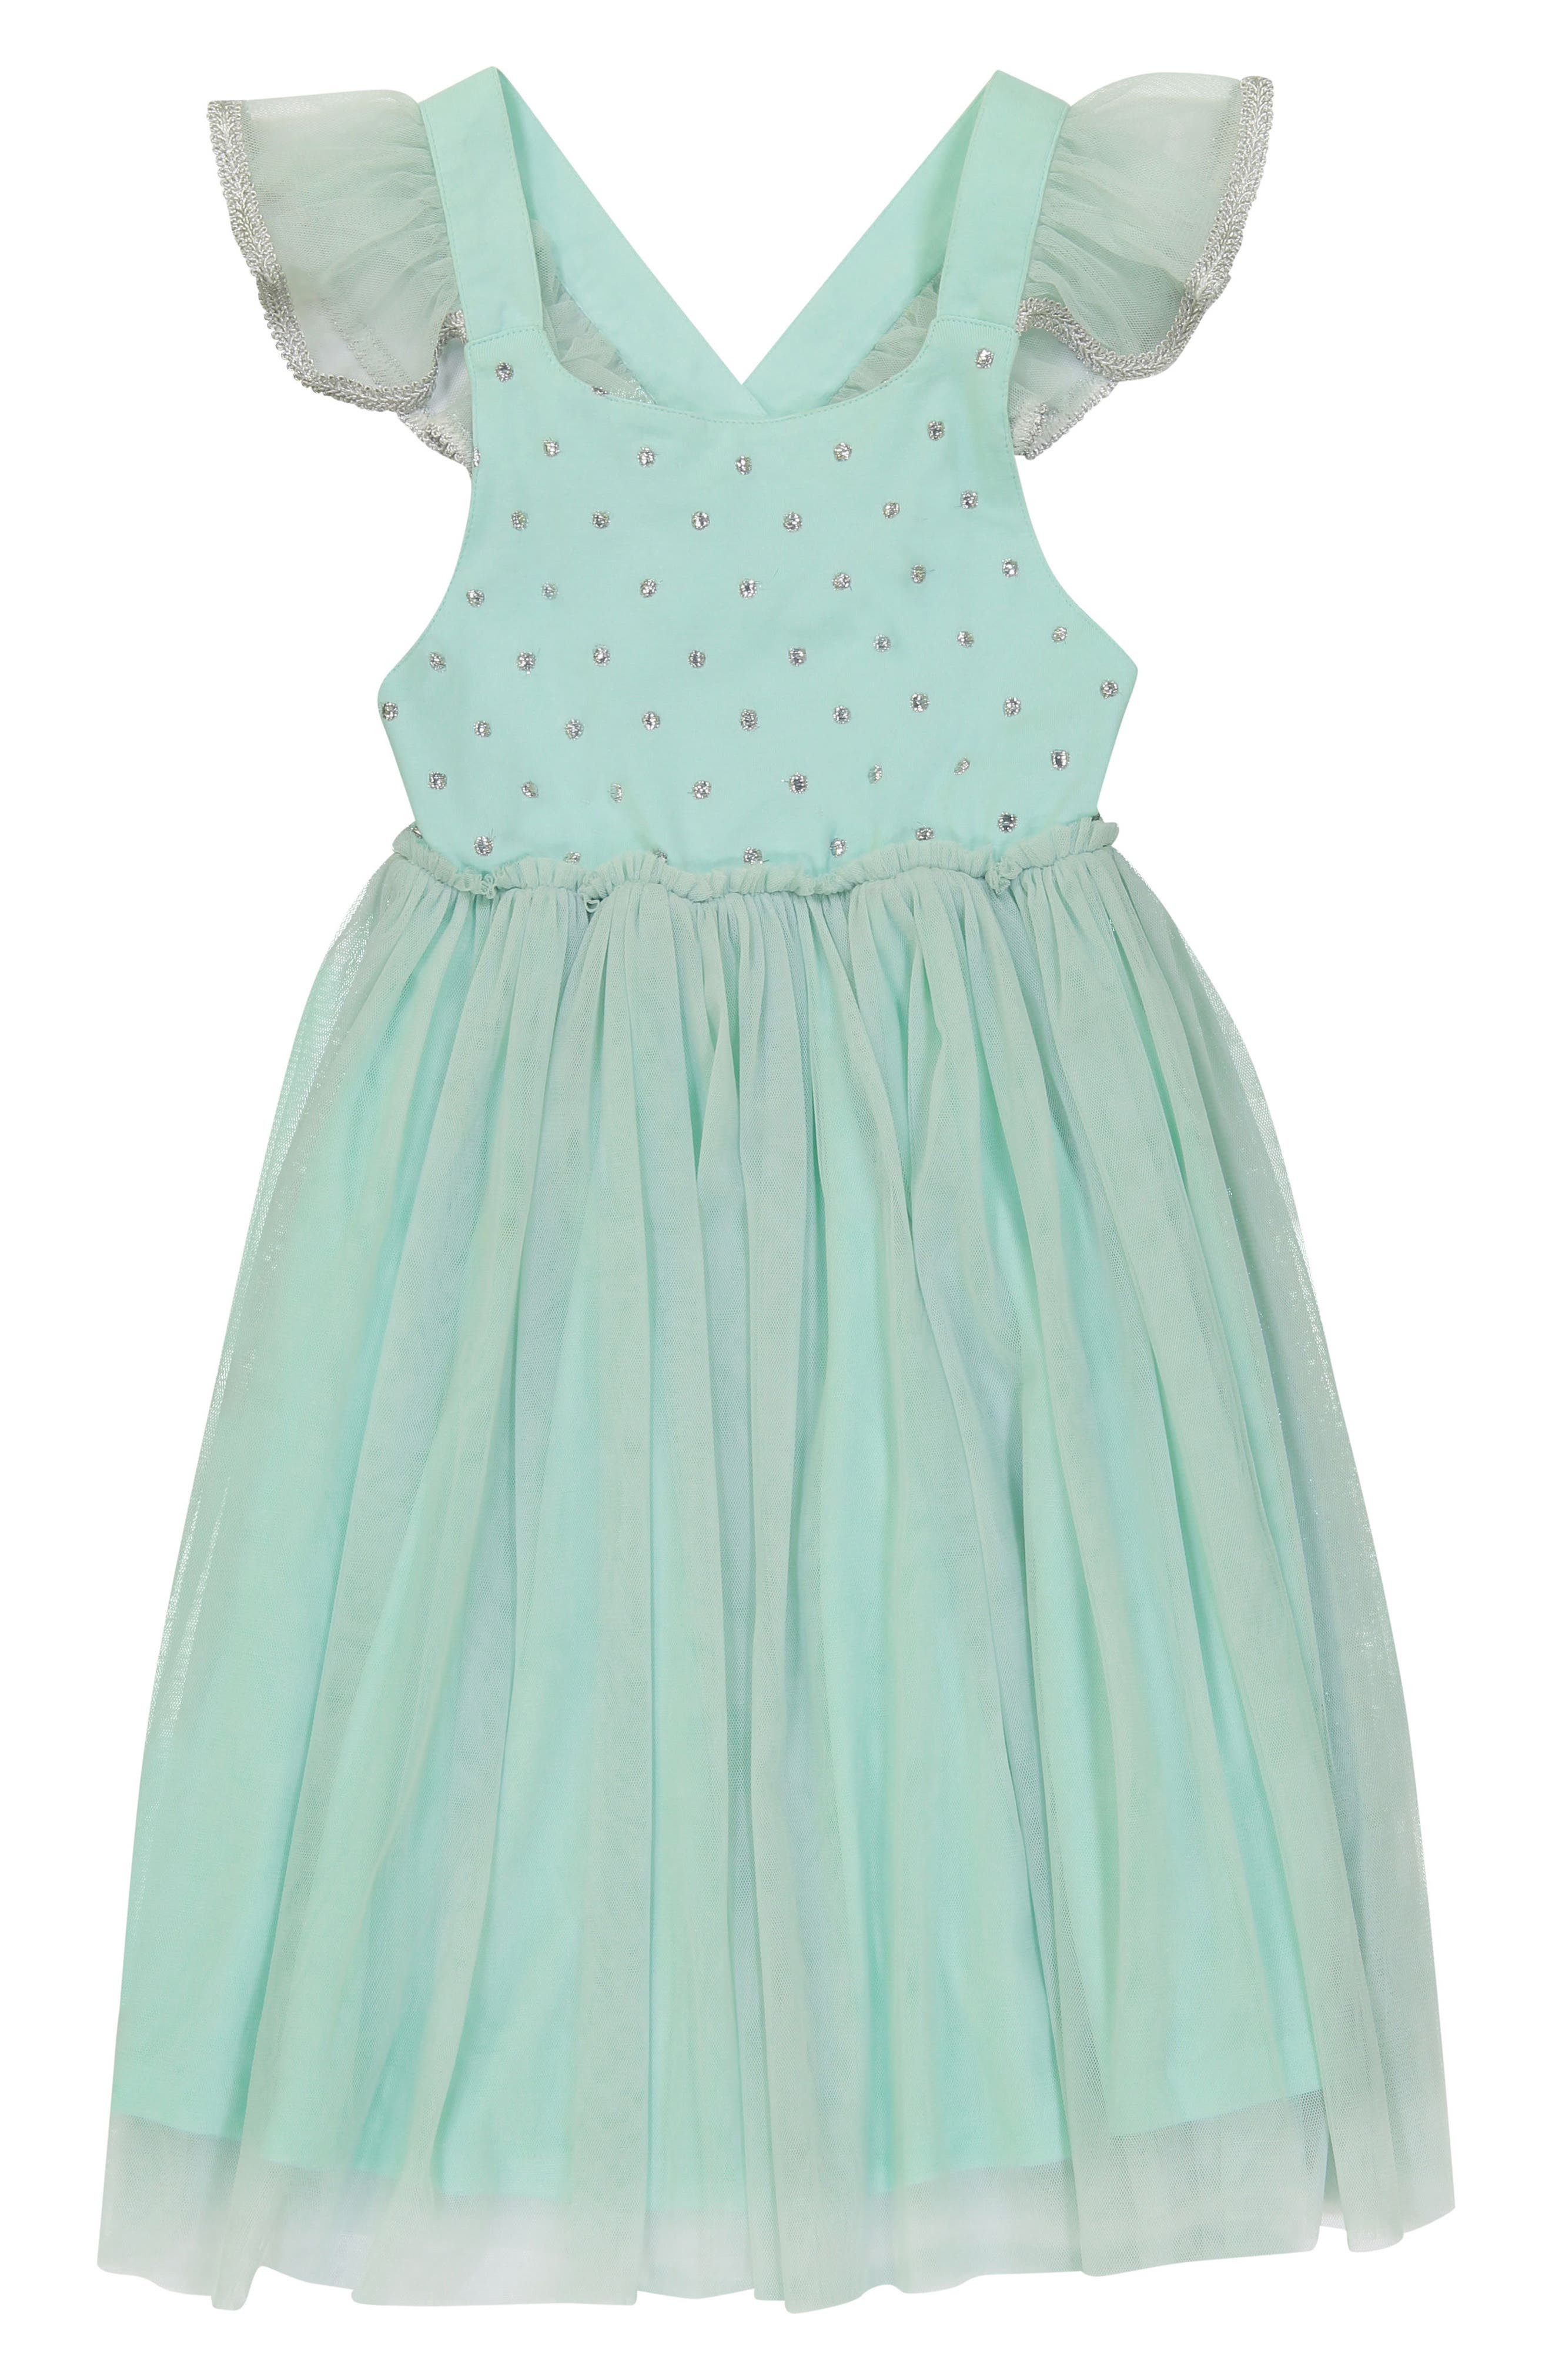 Diya Tulle Sundress,                             Main thumbnail 1, color,                             405